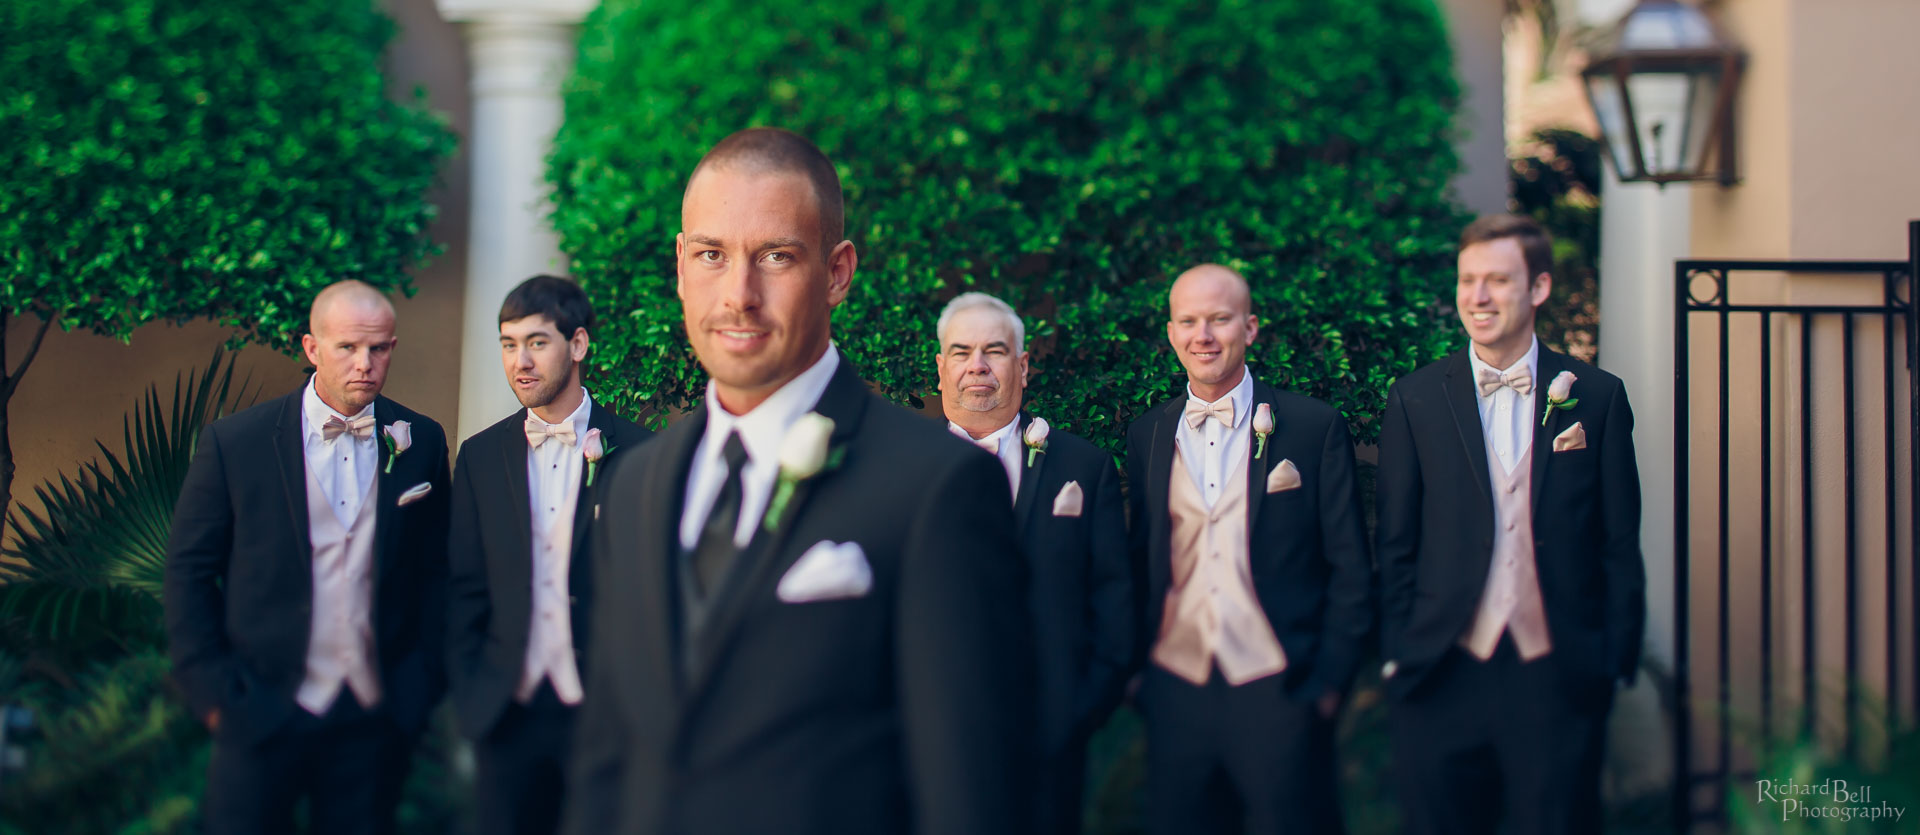 Christian and the groomsman